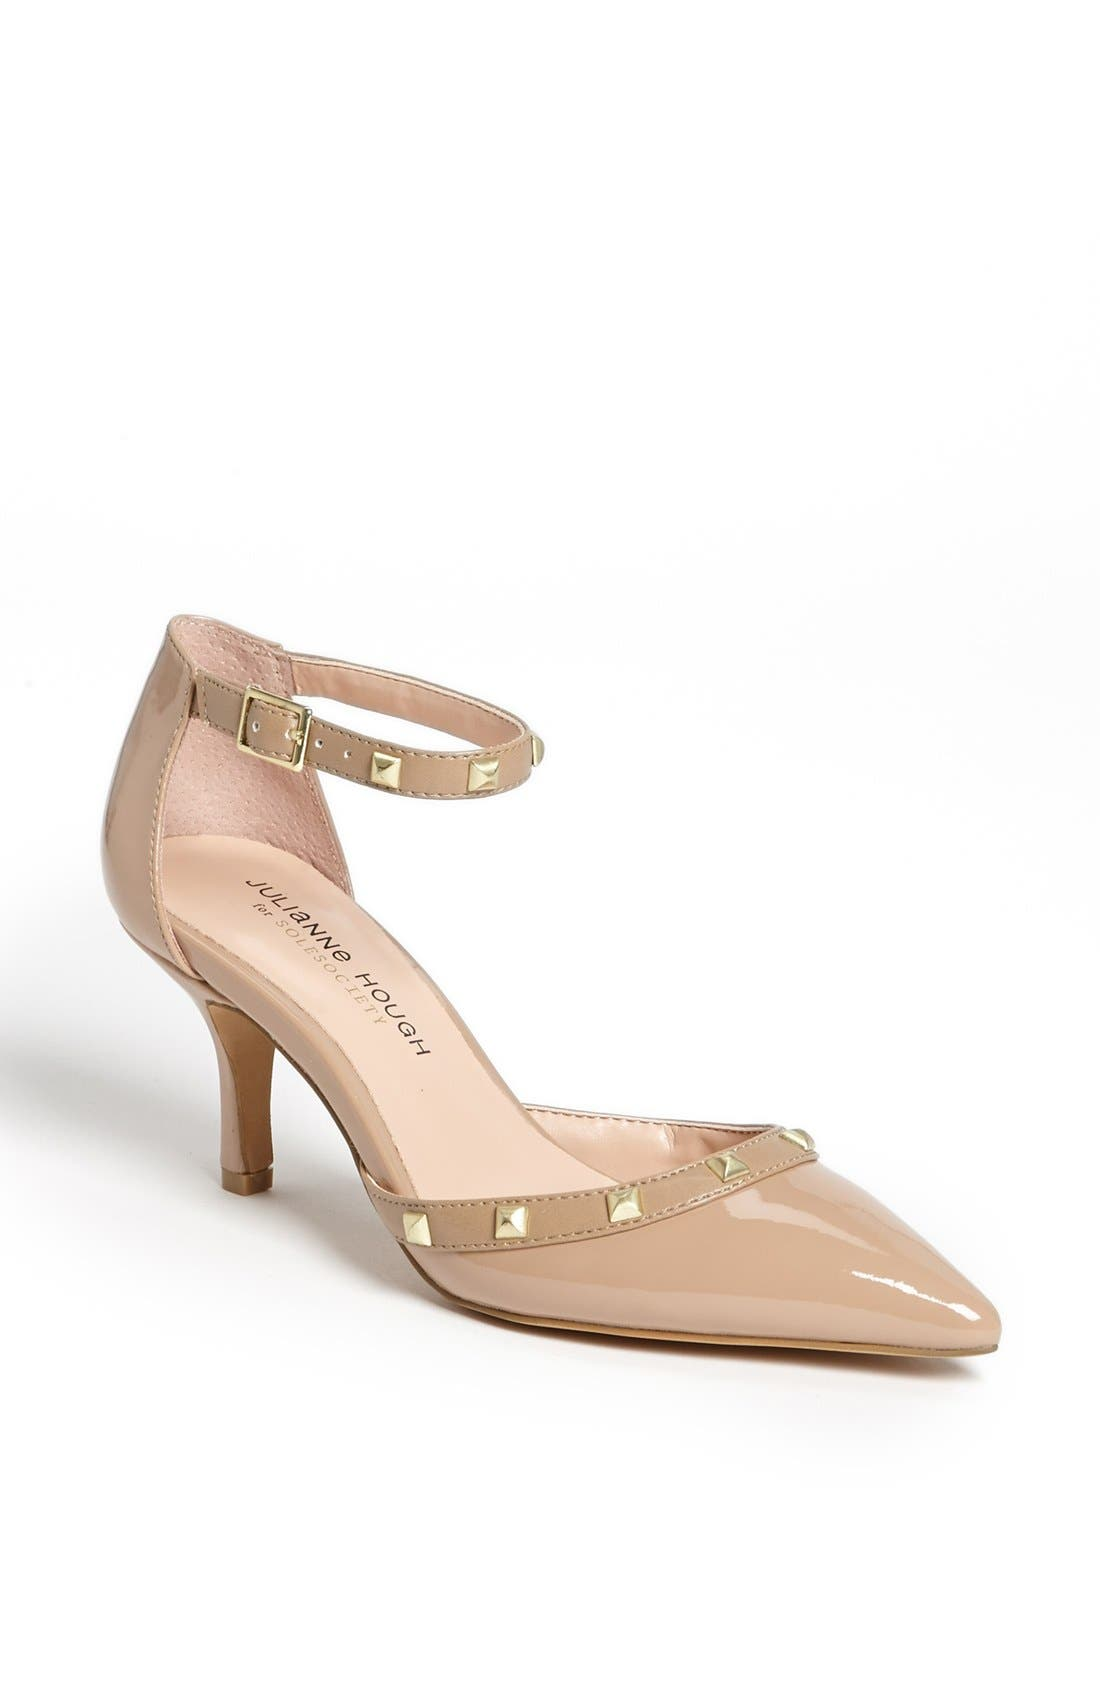 Alternate Image 1 Selected - Julianne Hough for Sole Society 'Anneke' Pump